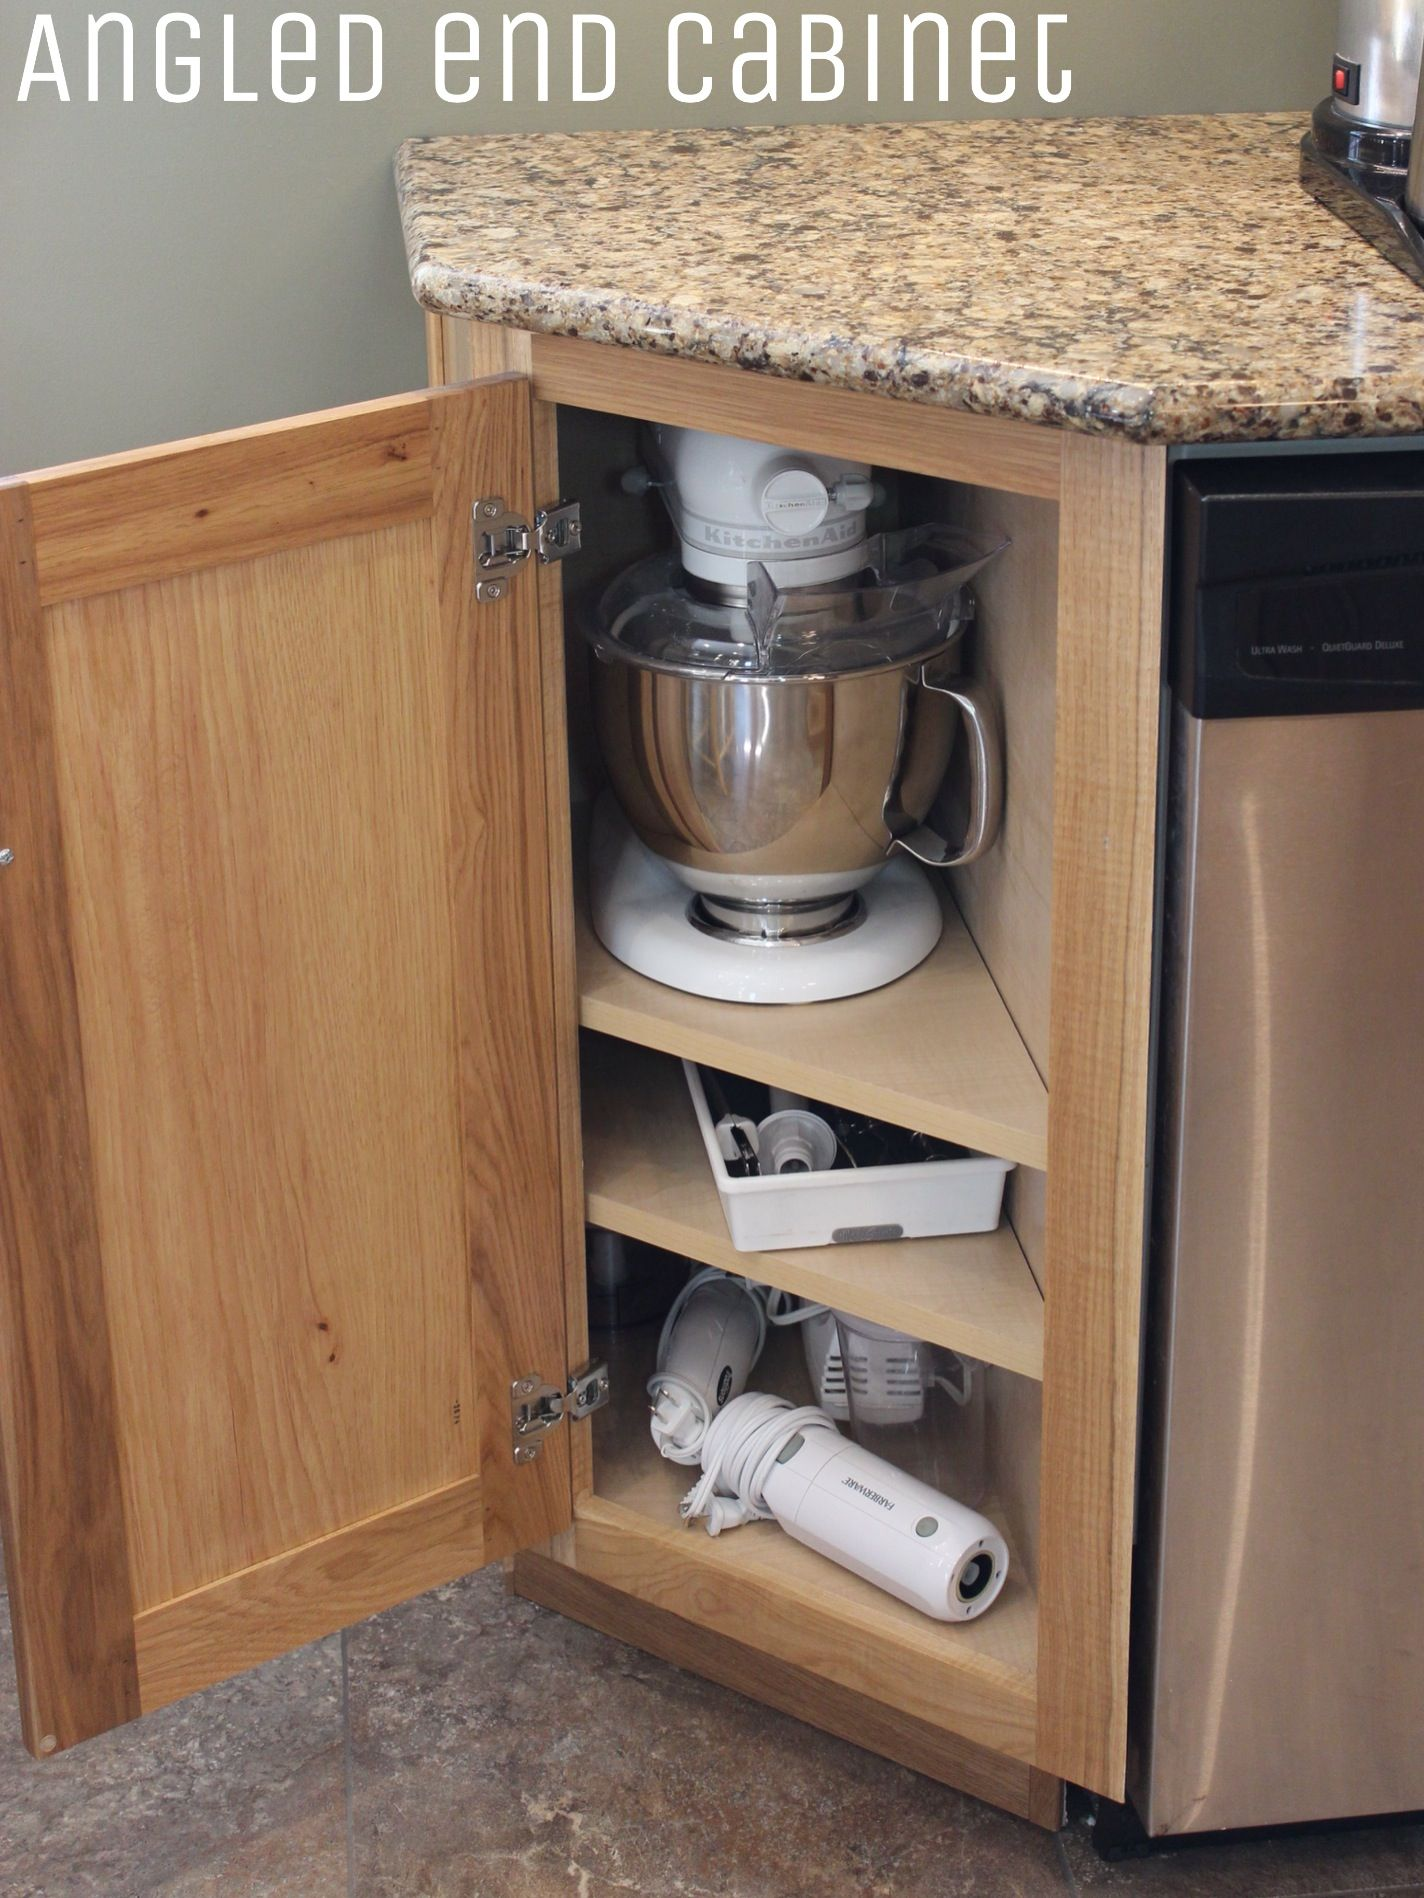 kitchen shelves options back inserts shelf size of door rack in inside doors small storage full black cabinet cupboard organizer under surprising with shallow